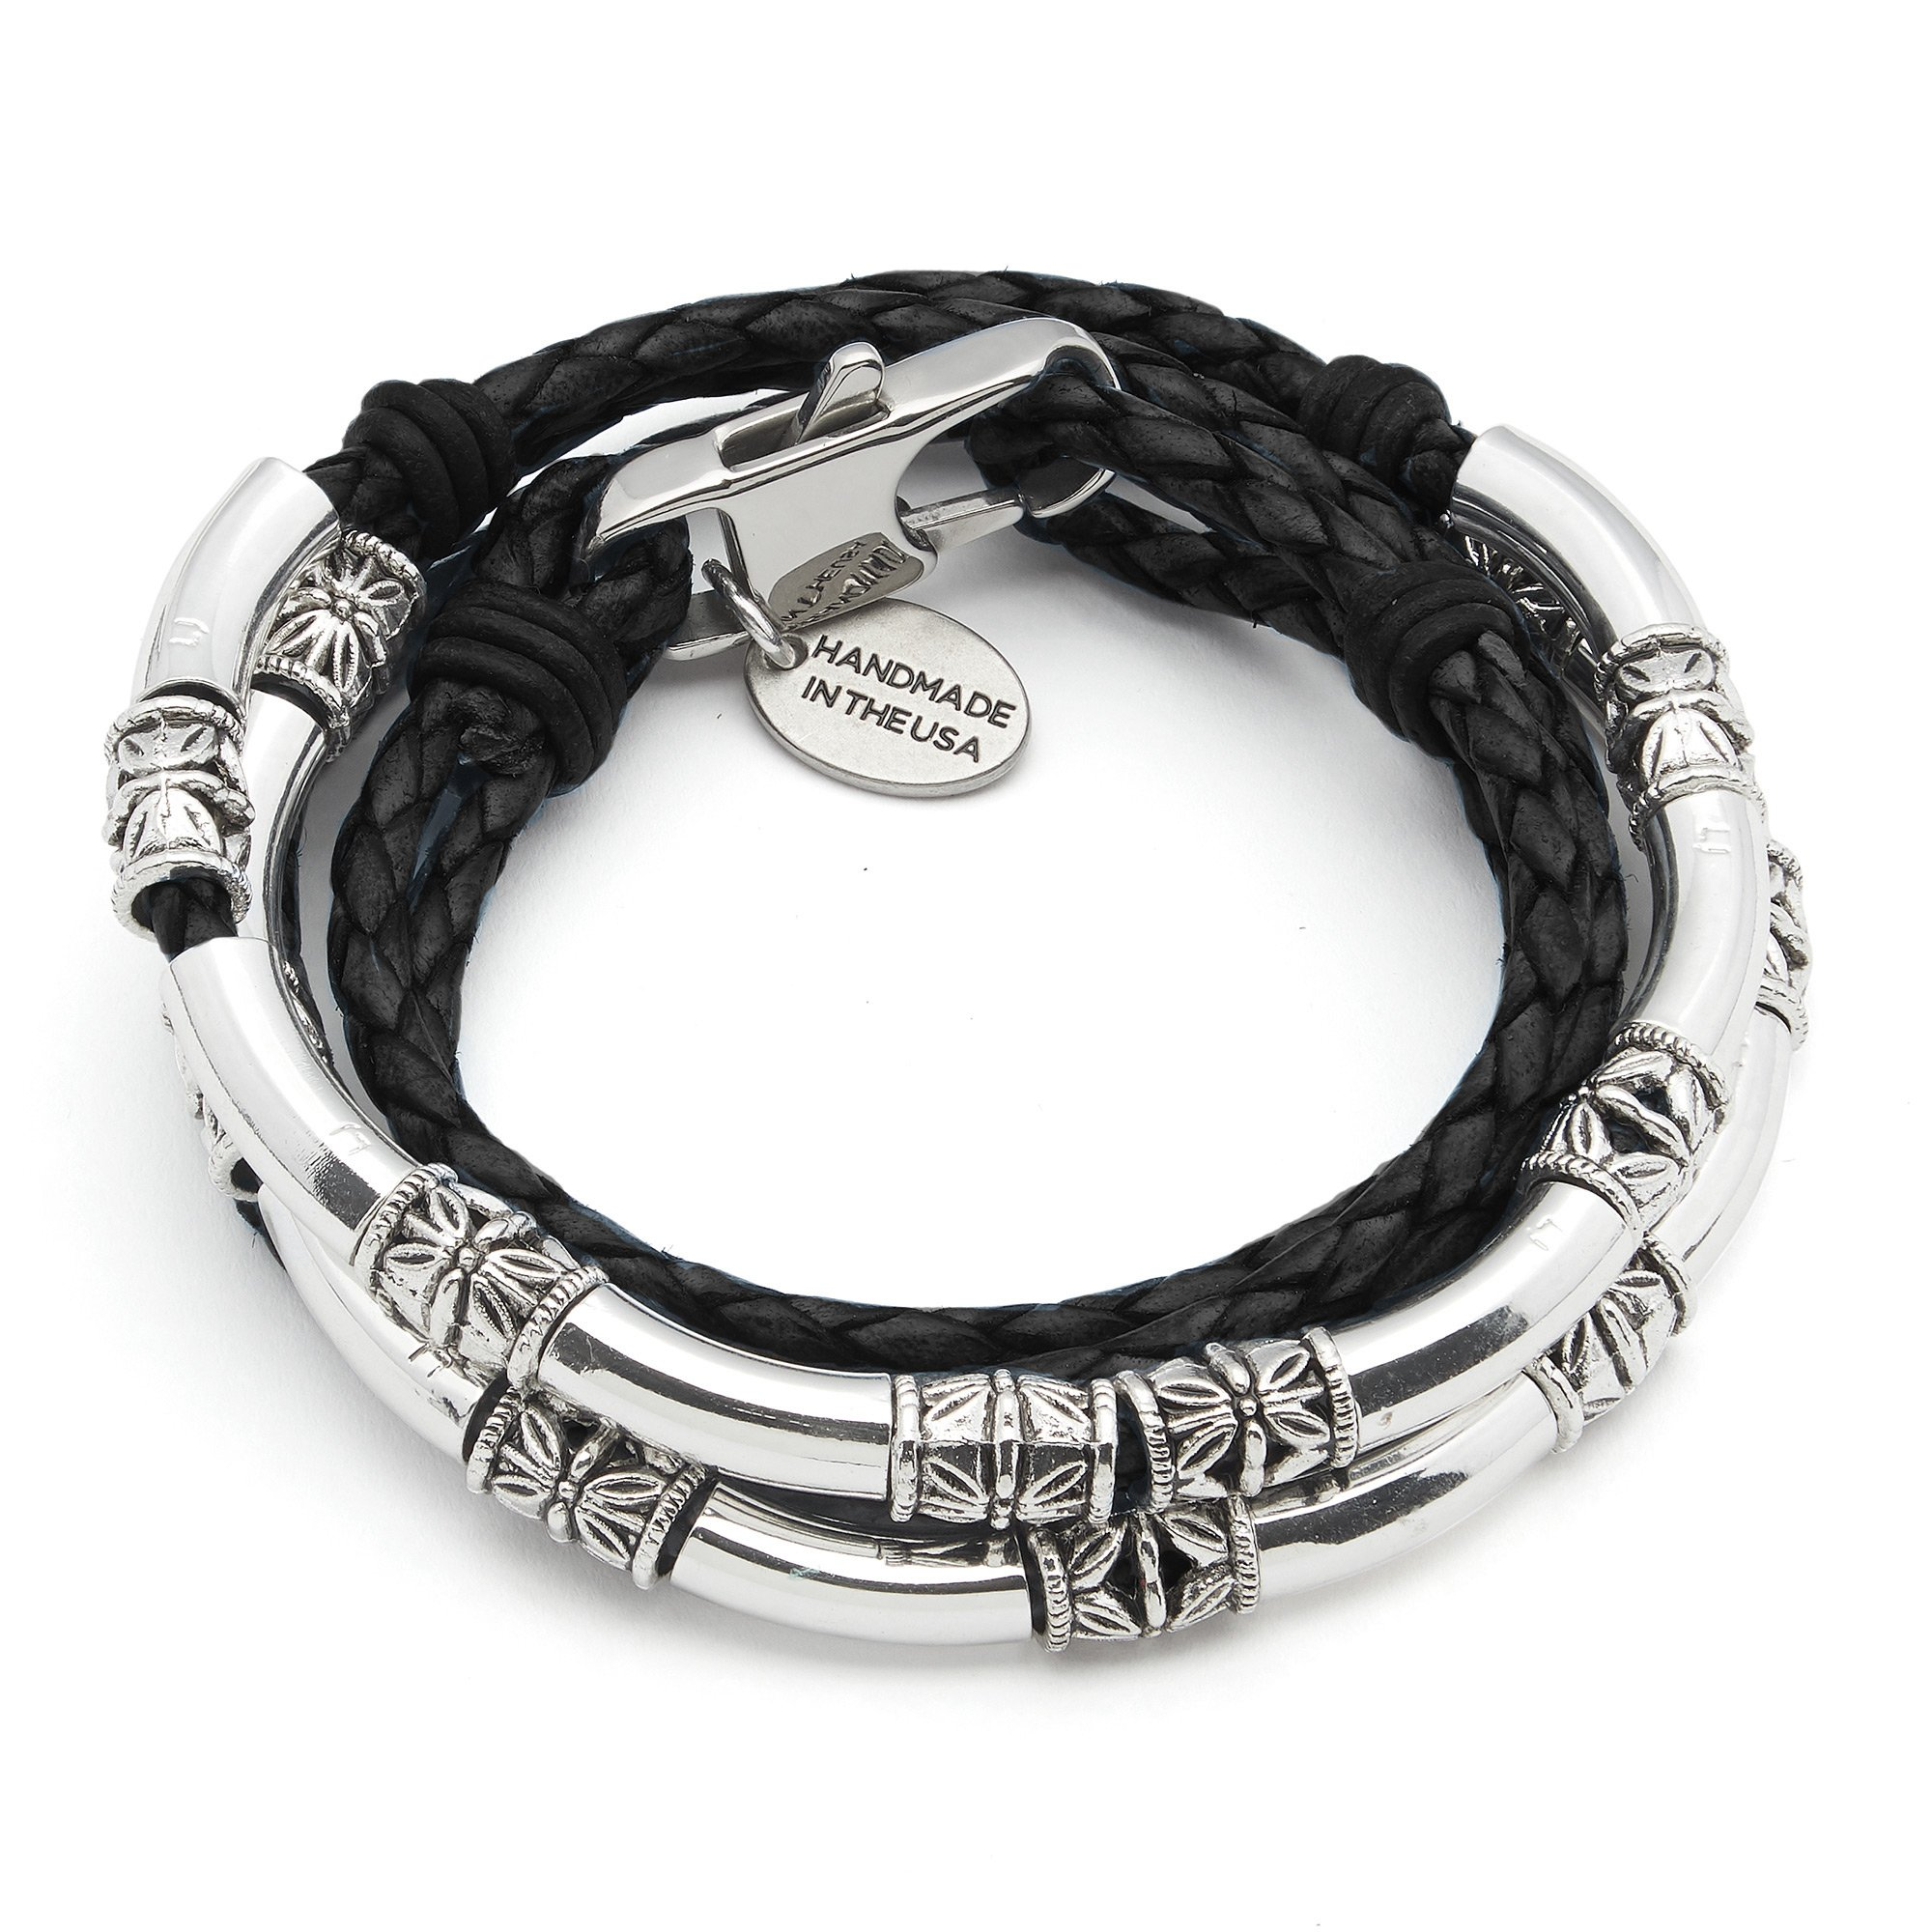 Lizzy James Mini Maxi Silver Plated Braided Leather Wrap Bracelet in Gloss Black Leather (MEDIUM)